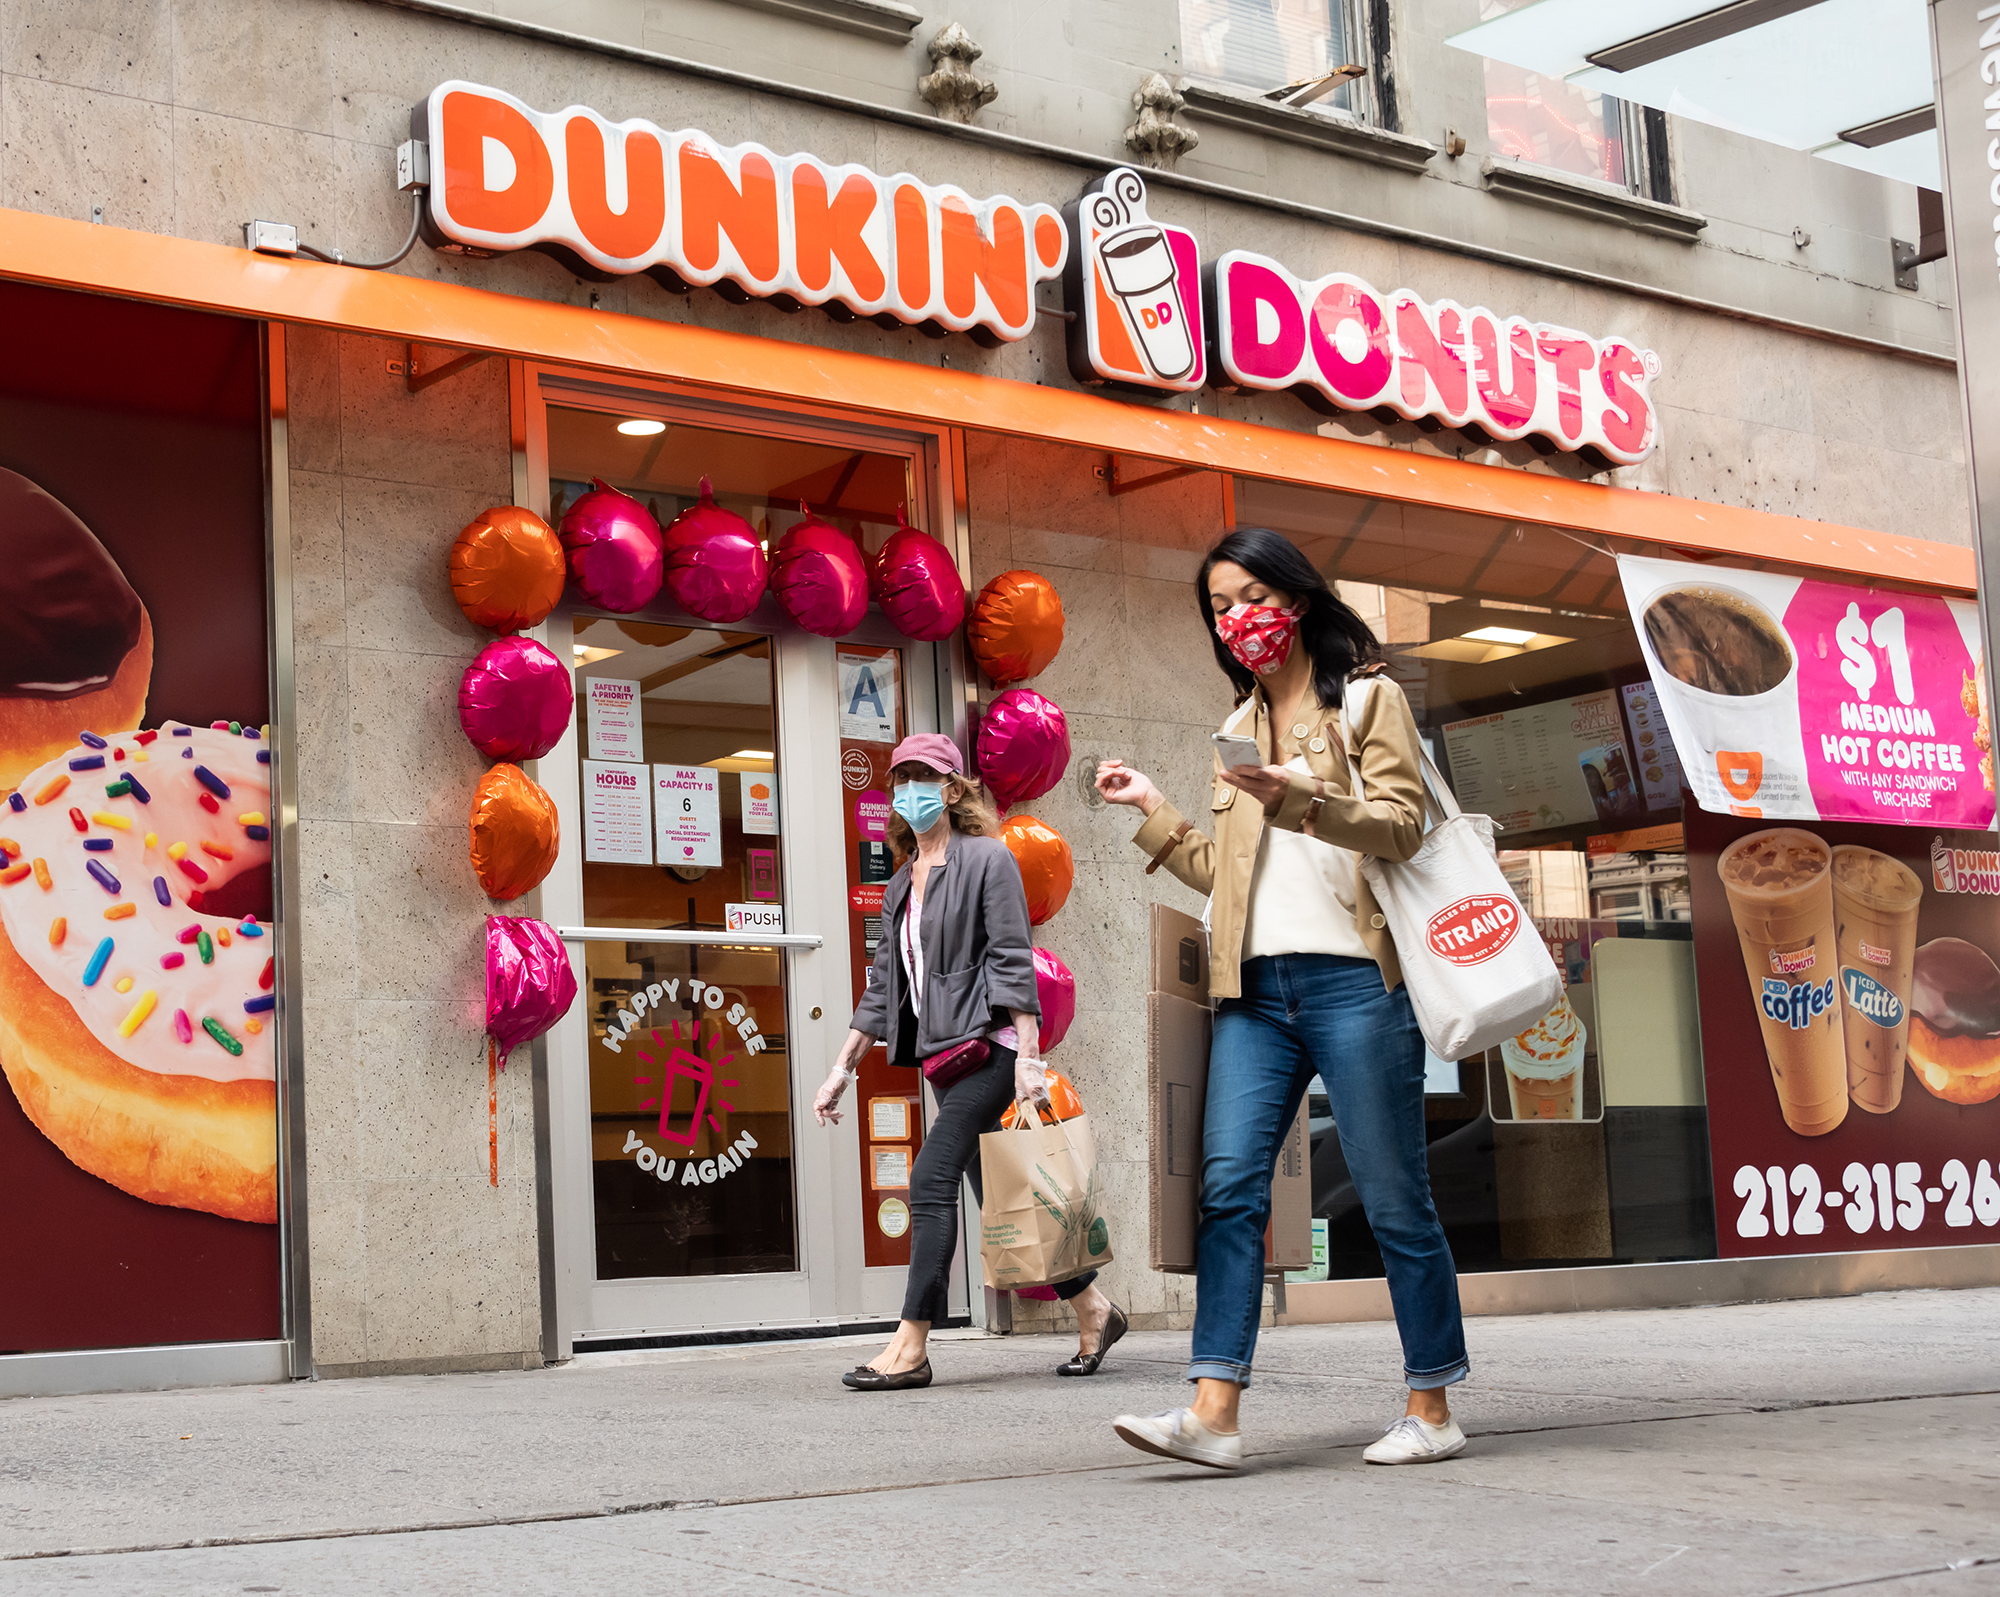 Dunkin' is going private in $11.3 billion deal